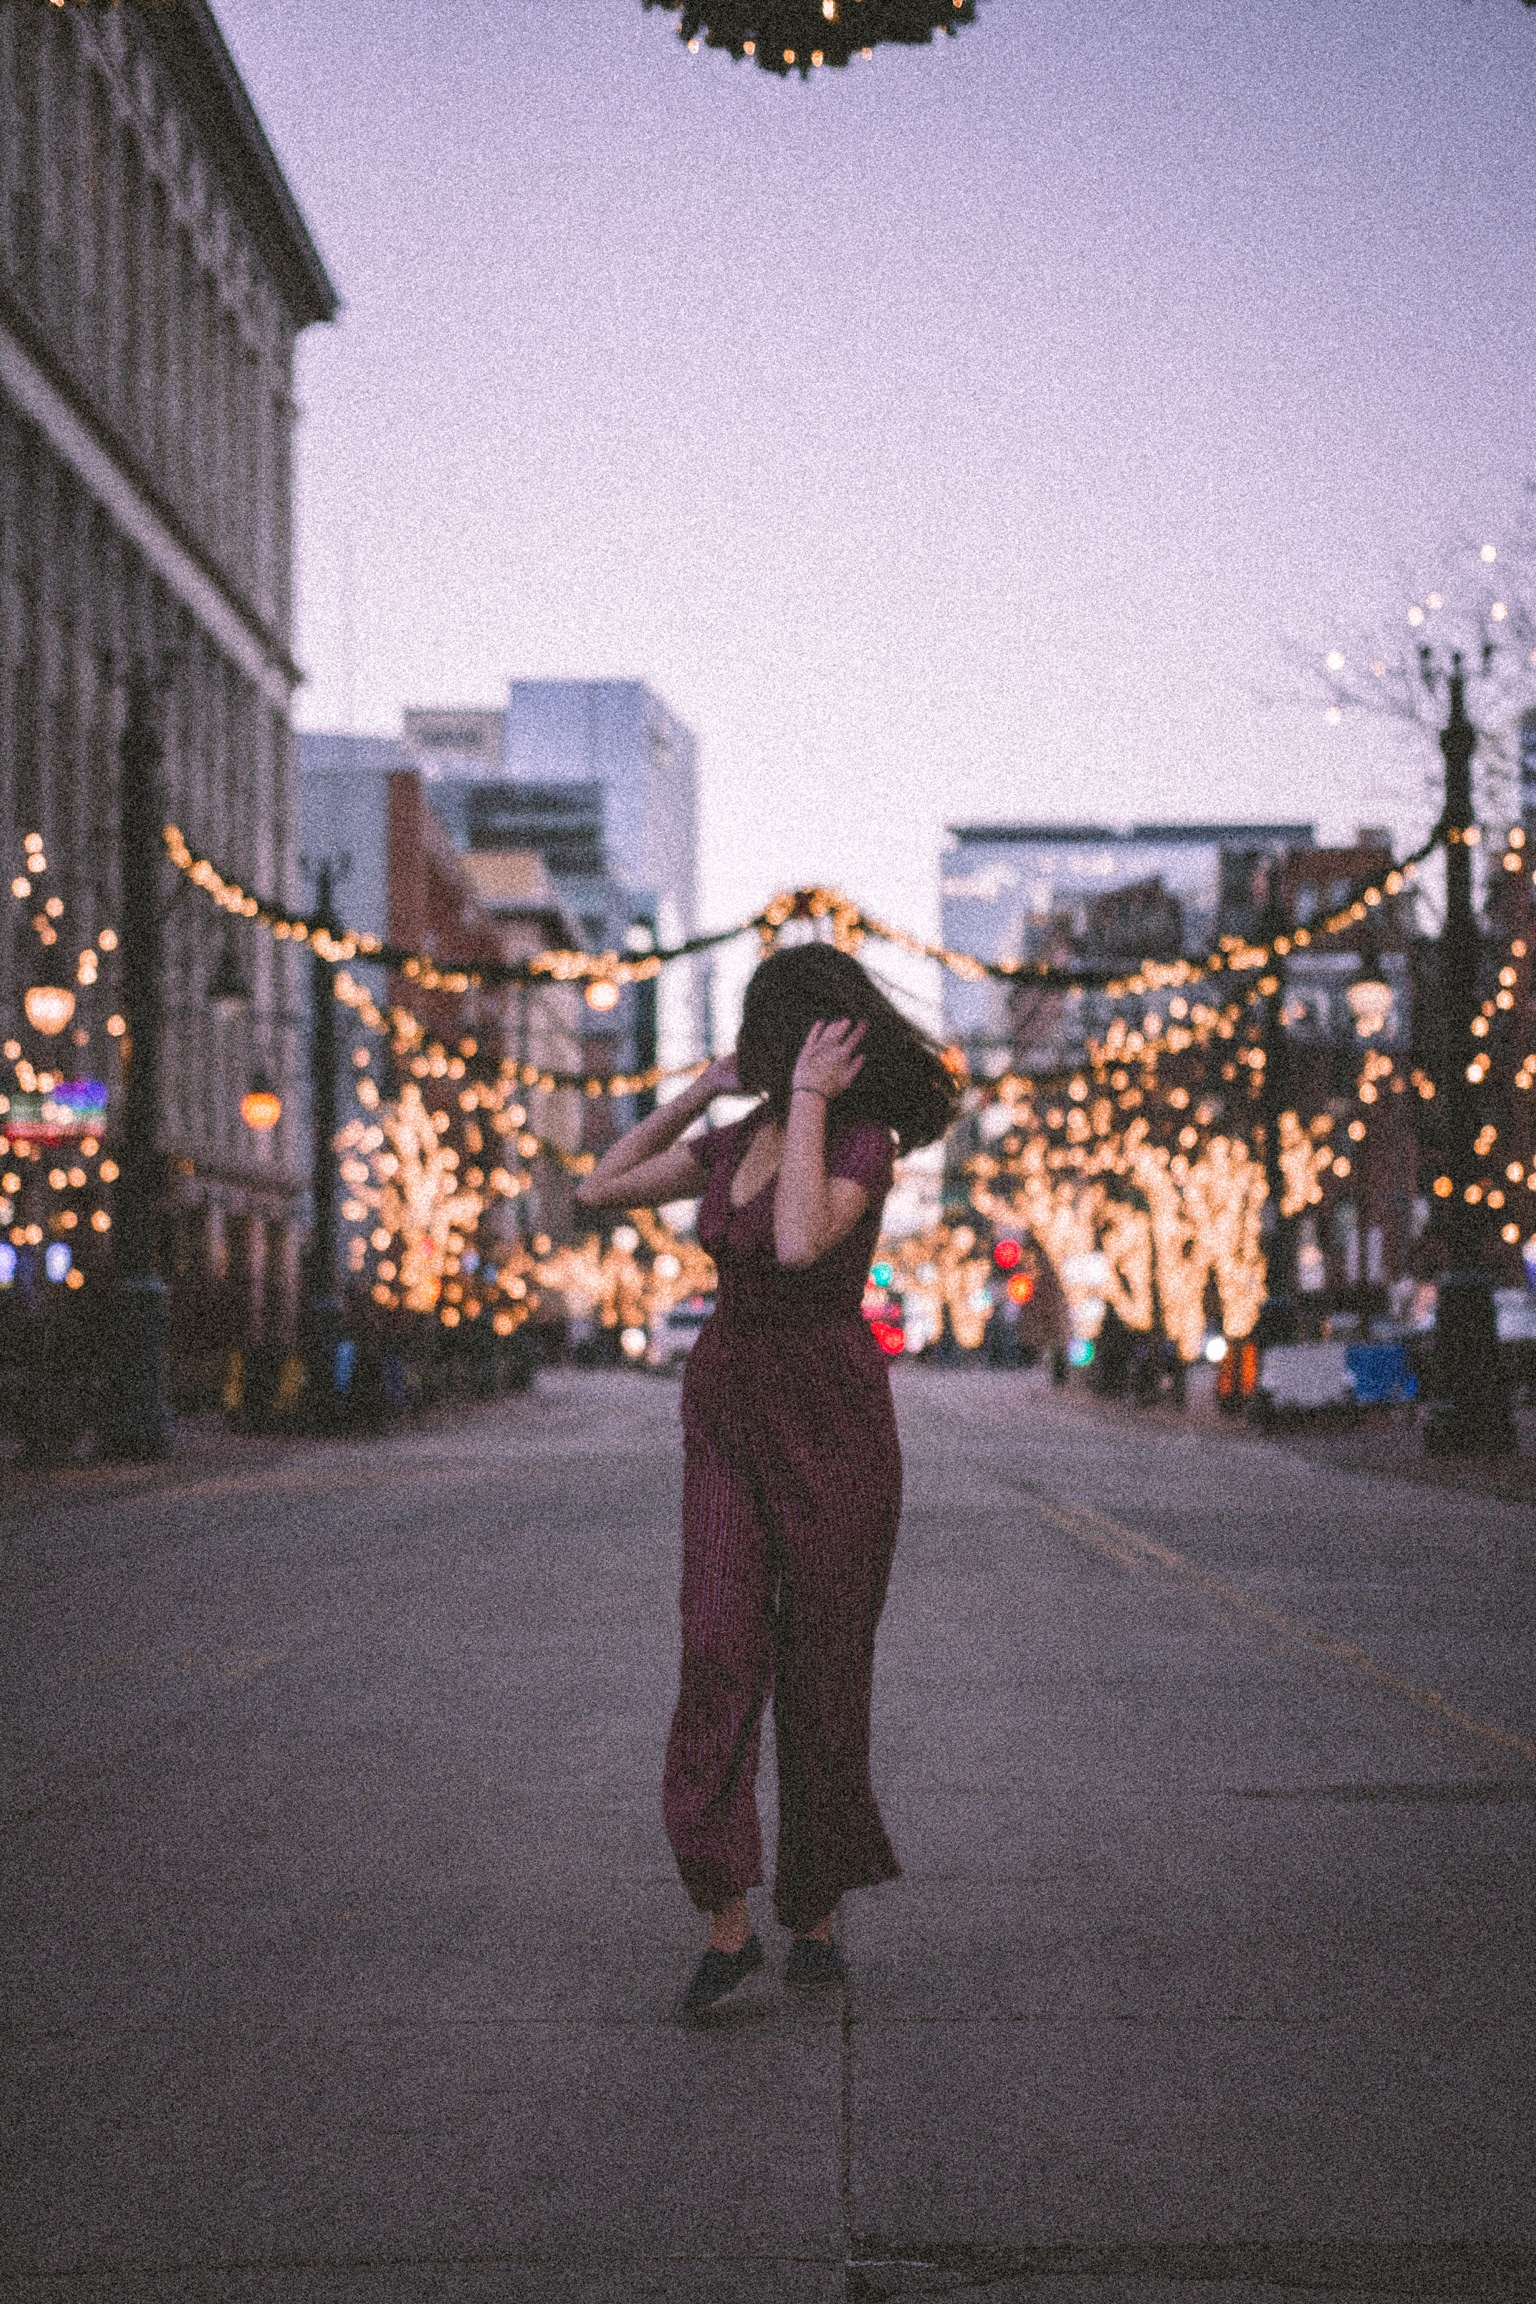 A young woman walks down the middle of a street at dusk. She looks behind her shoulder at holiday lights that adorn the street lamps and trees.